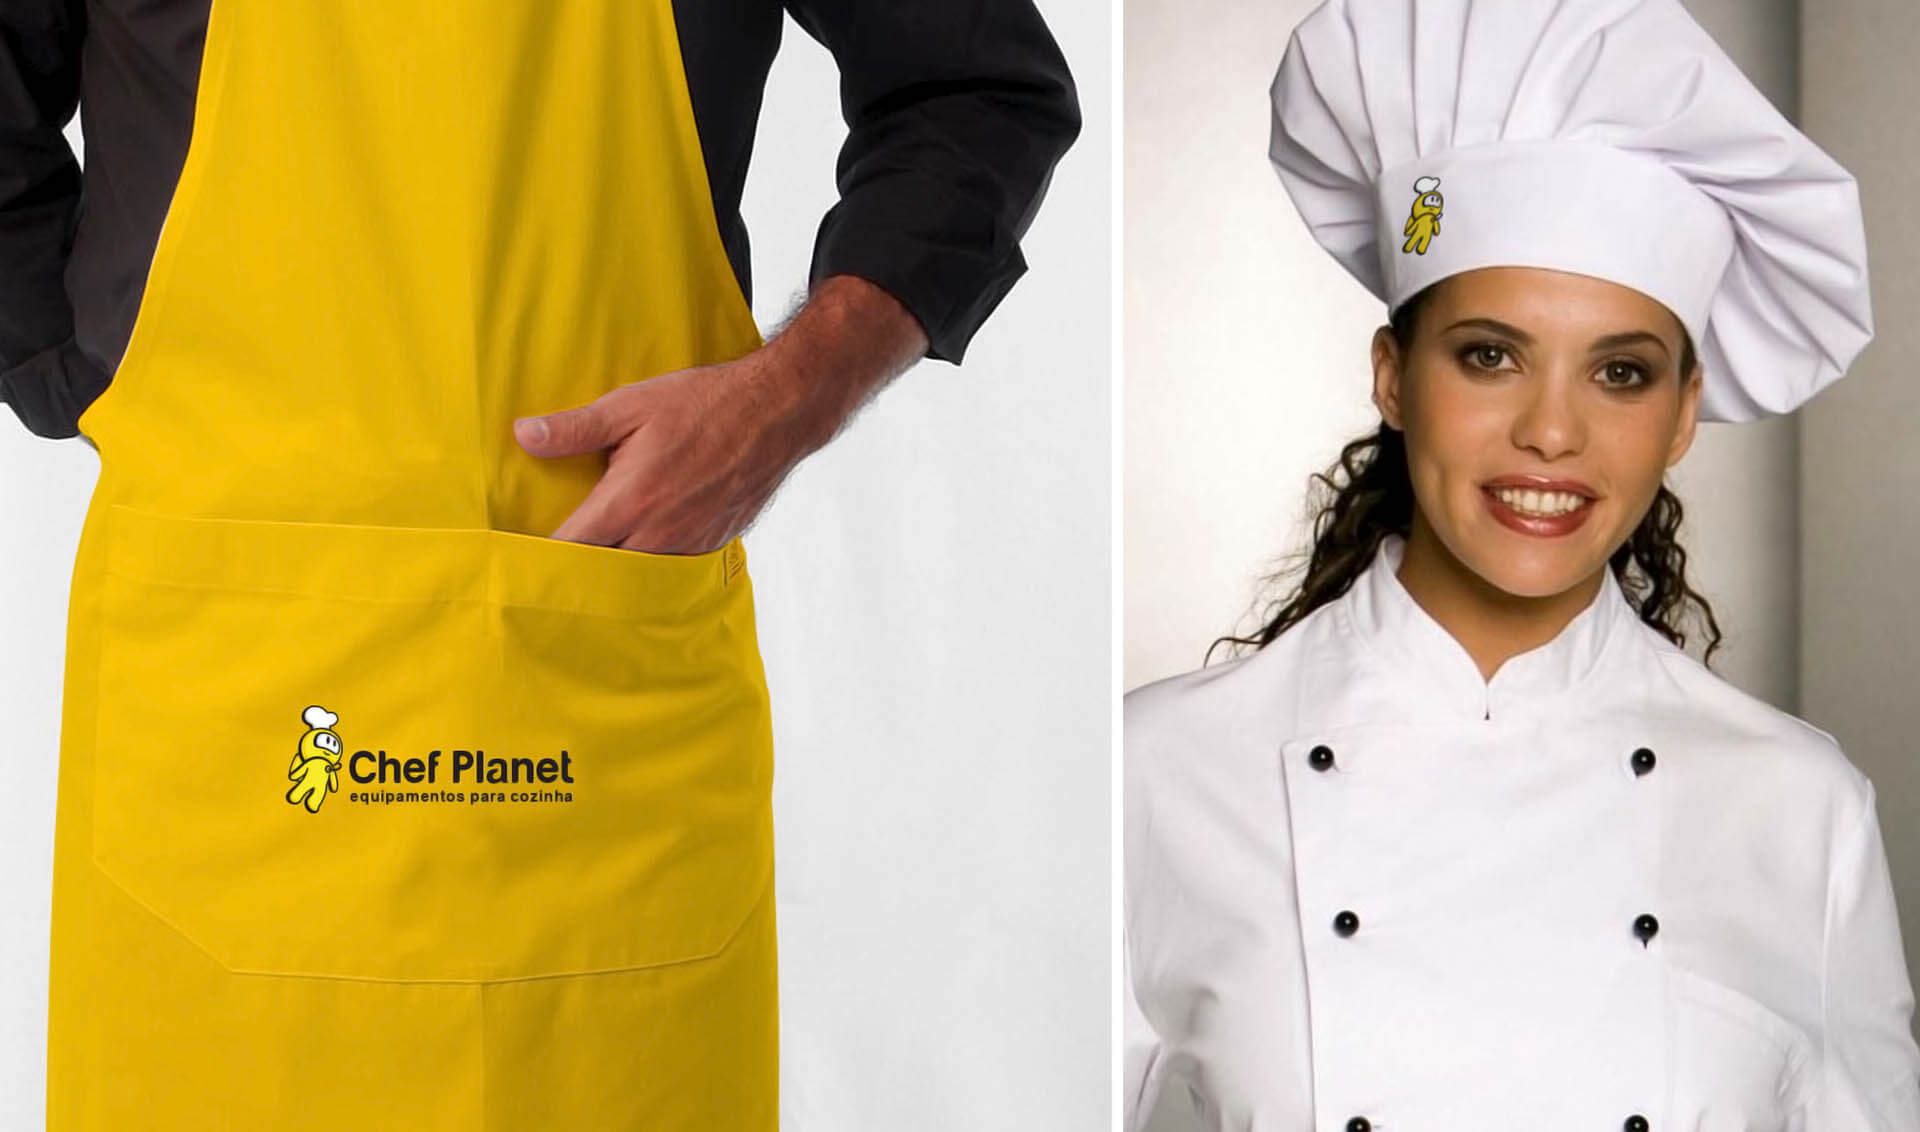 Branding Chef Planet - Pontodesign - Uniforme